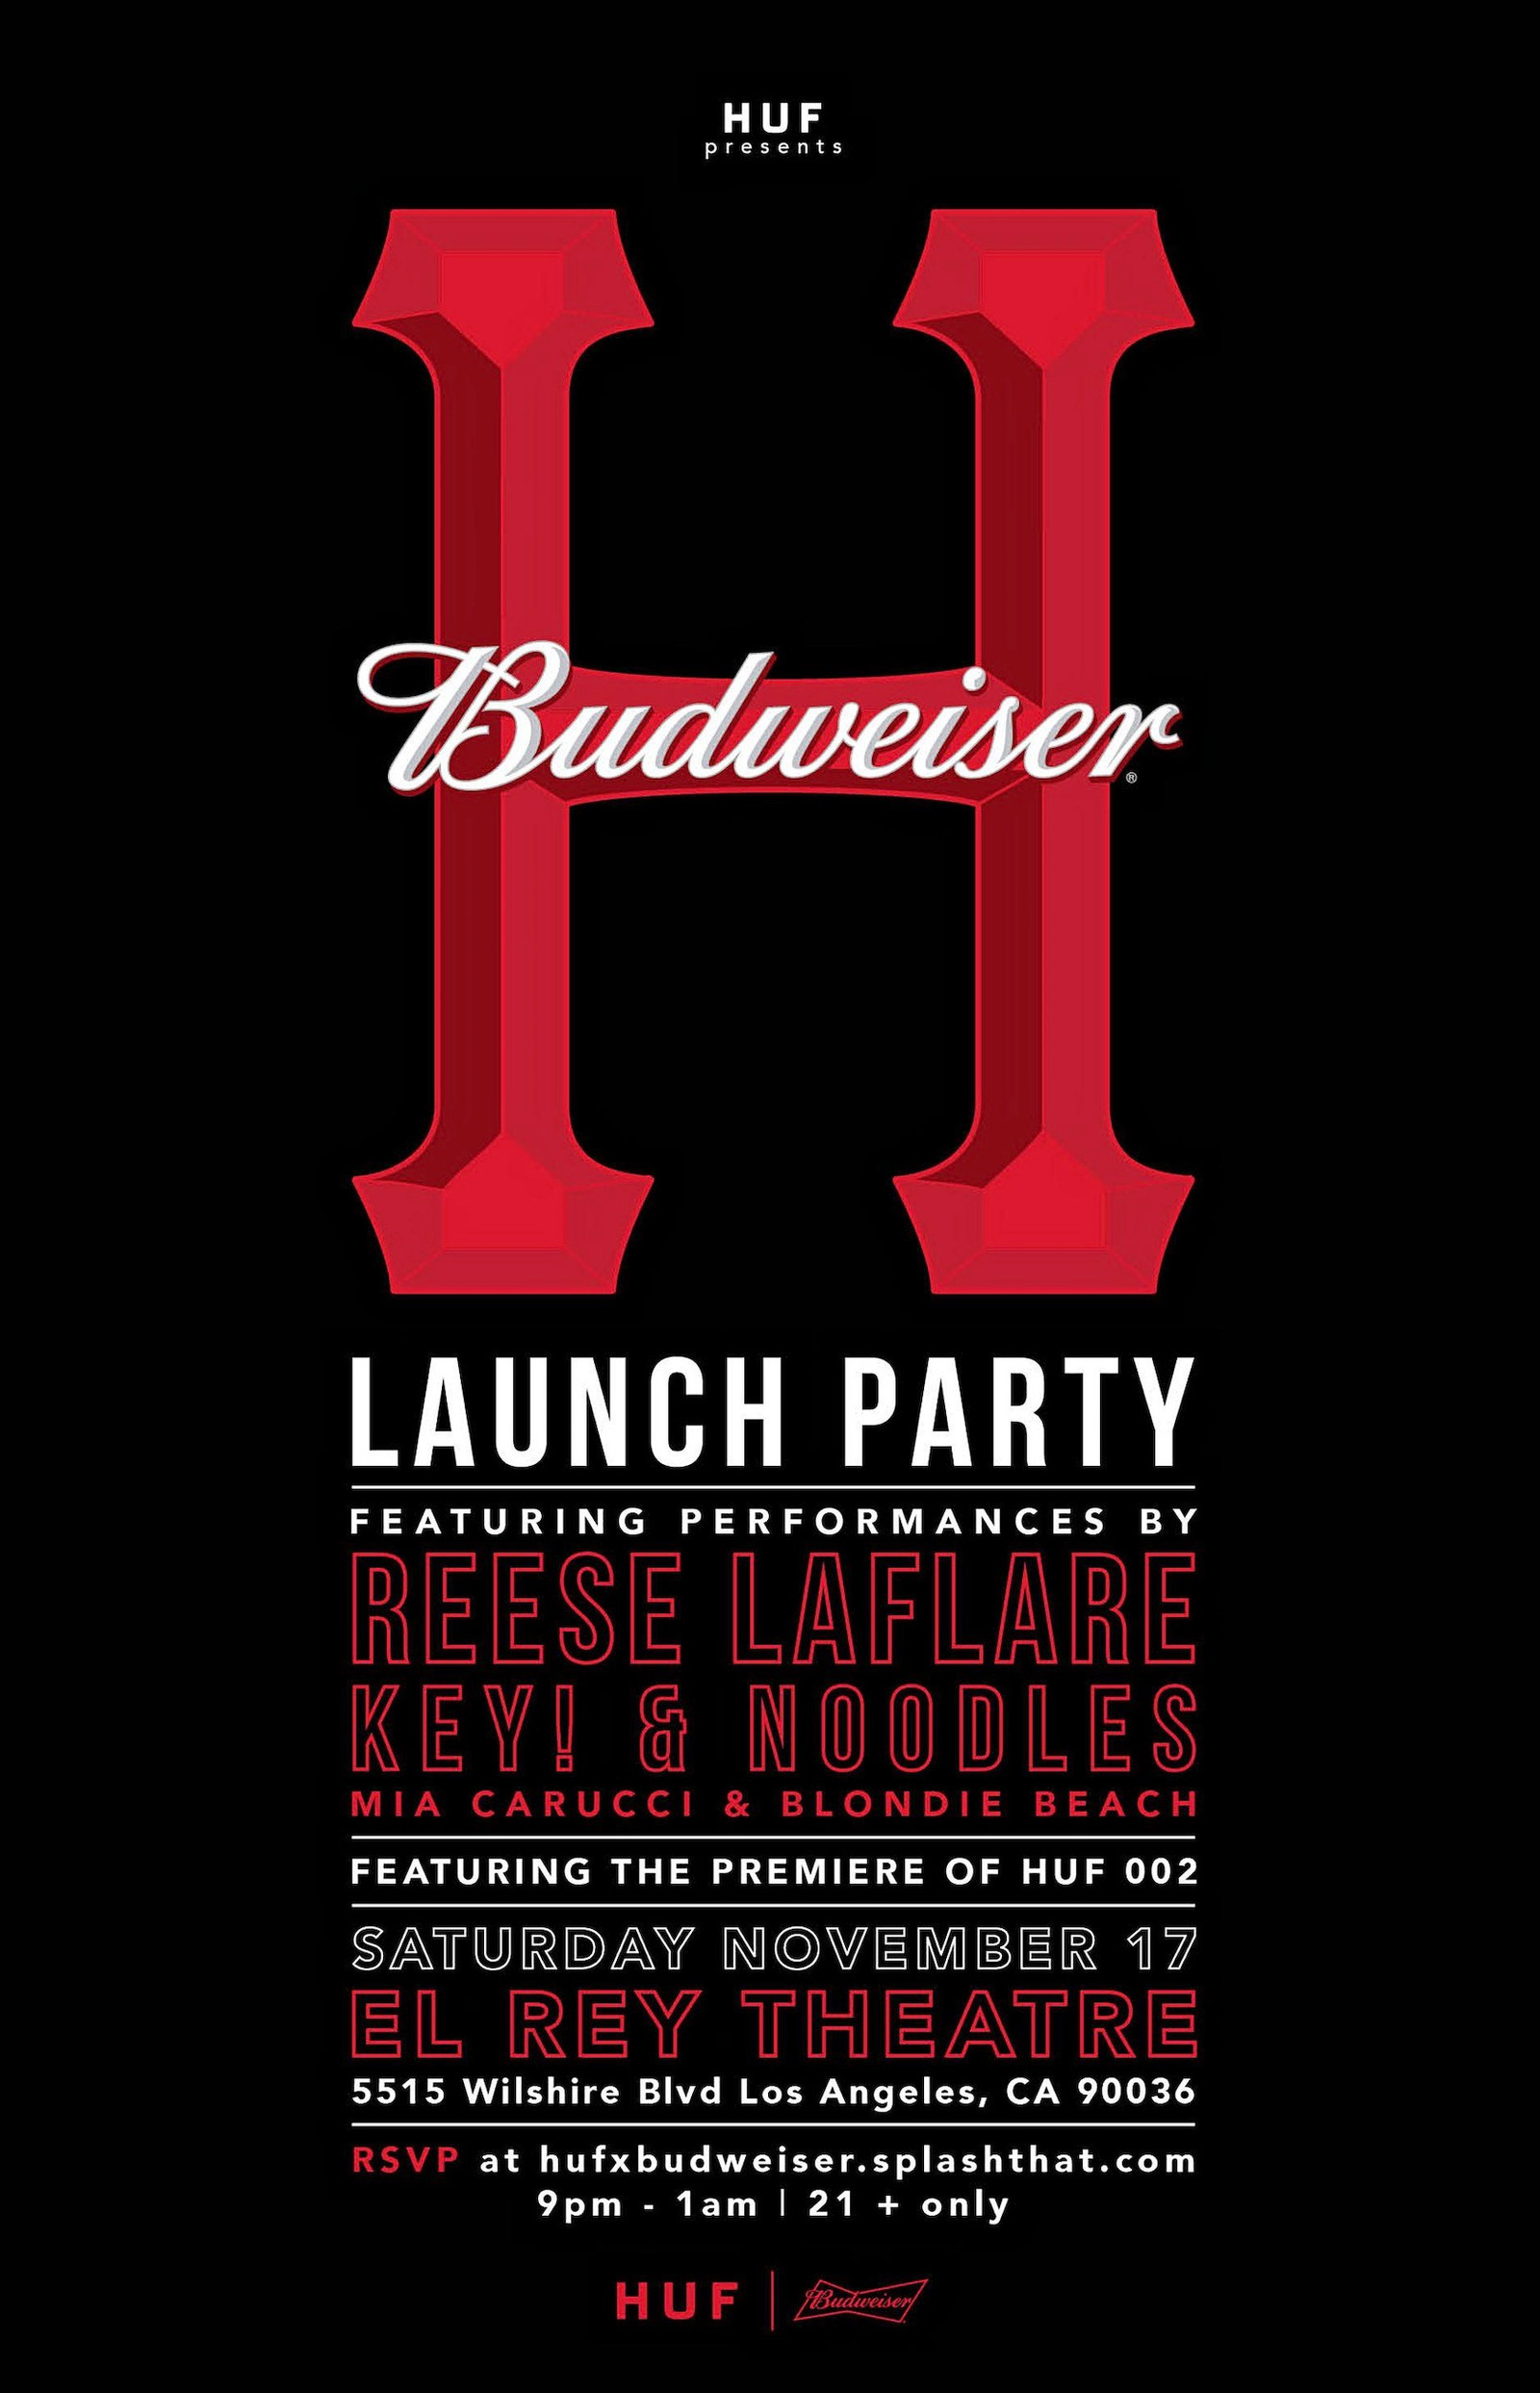 HUF X BUDWEISER COLLABEERATION LAUNCHING NEXT WEEK